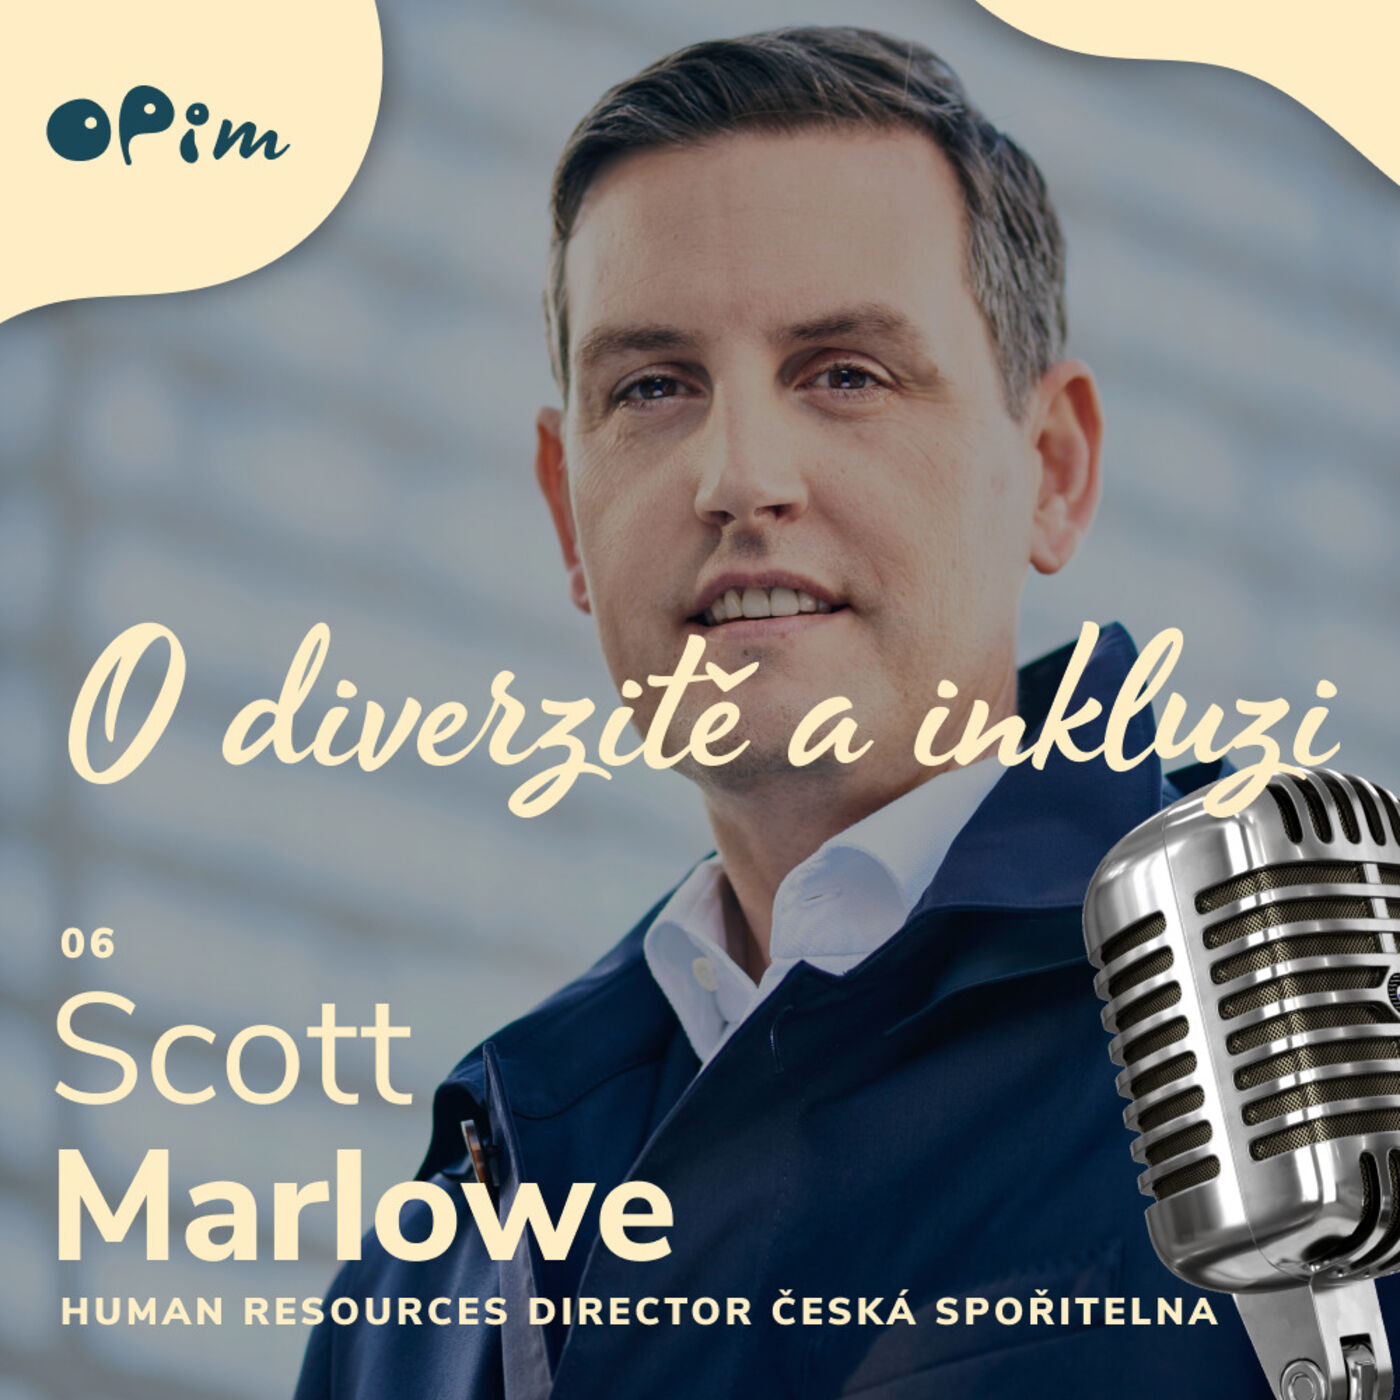 06: Scott Marlowe: what are the key areas in D&I to focus on in Česká spořitelna and what is so specific about the company culture?